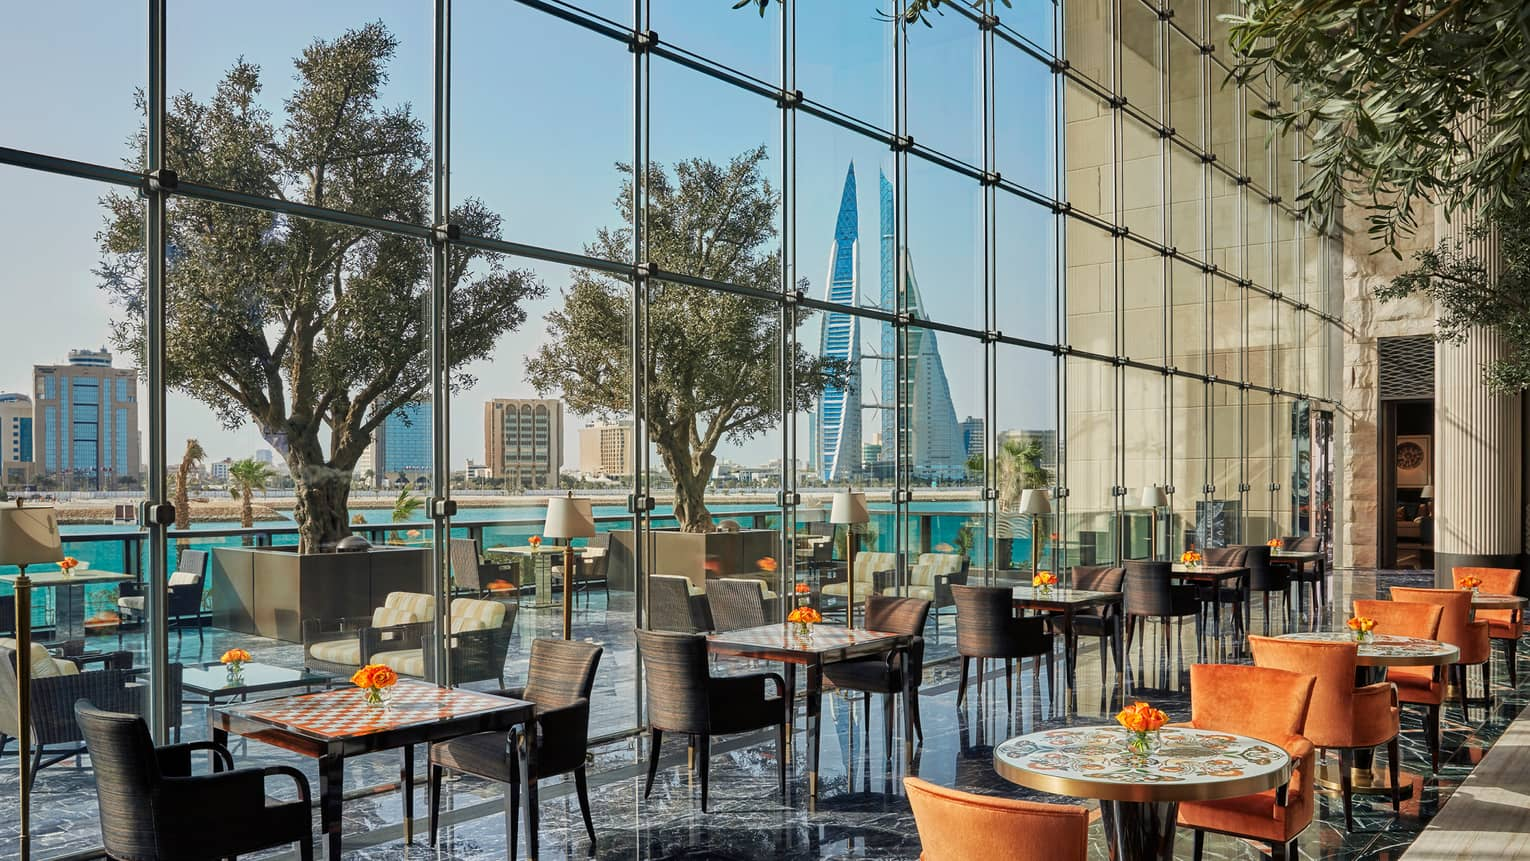 Sunny Bahrain Bay Kitchen dining room with orange and brown chairs, decorative table tops, tall glass wall